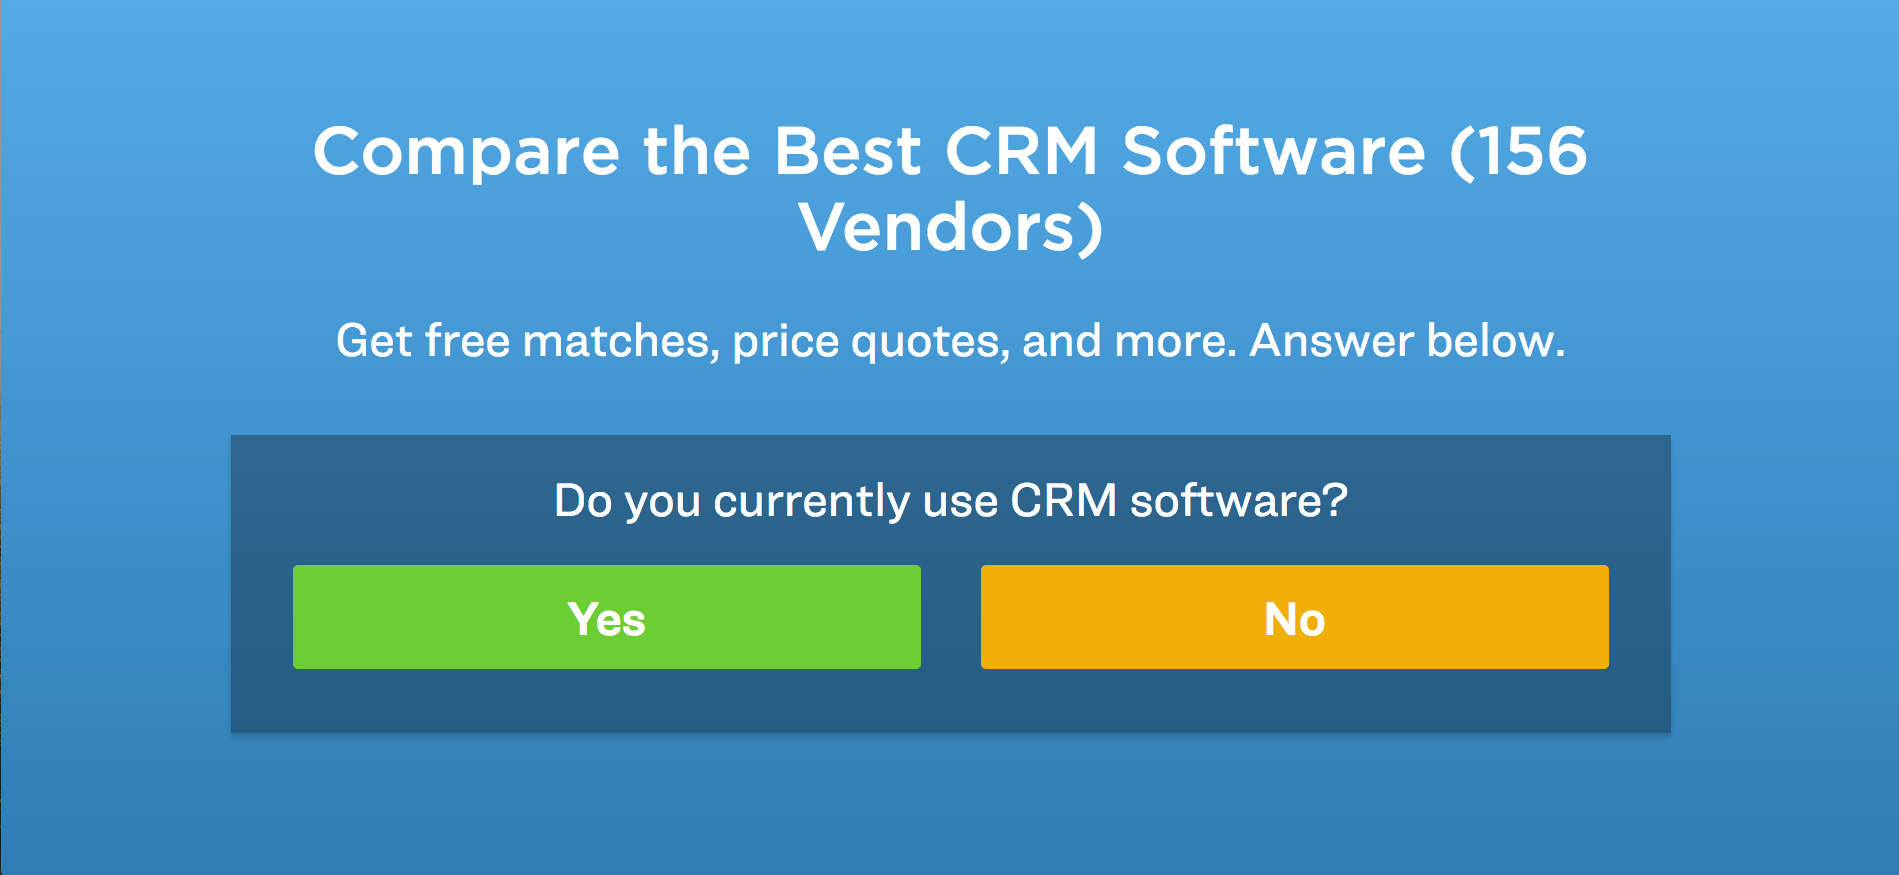 choose the best crm software